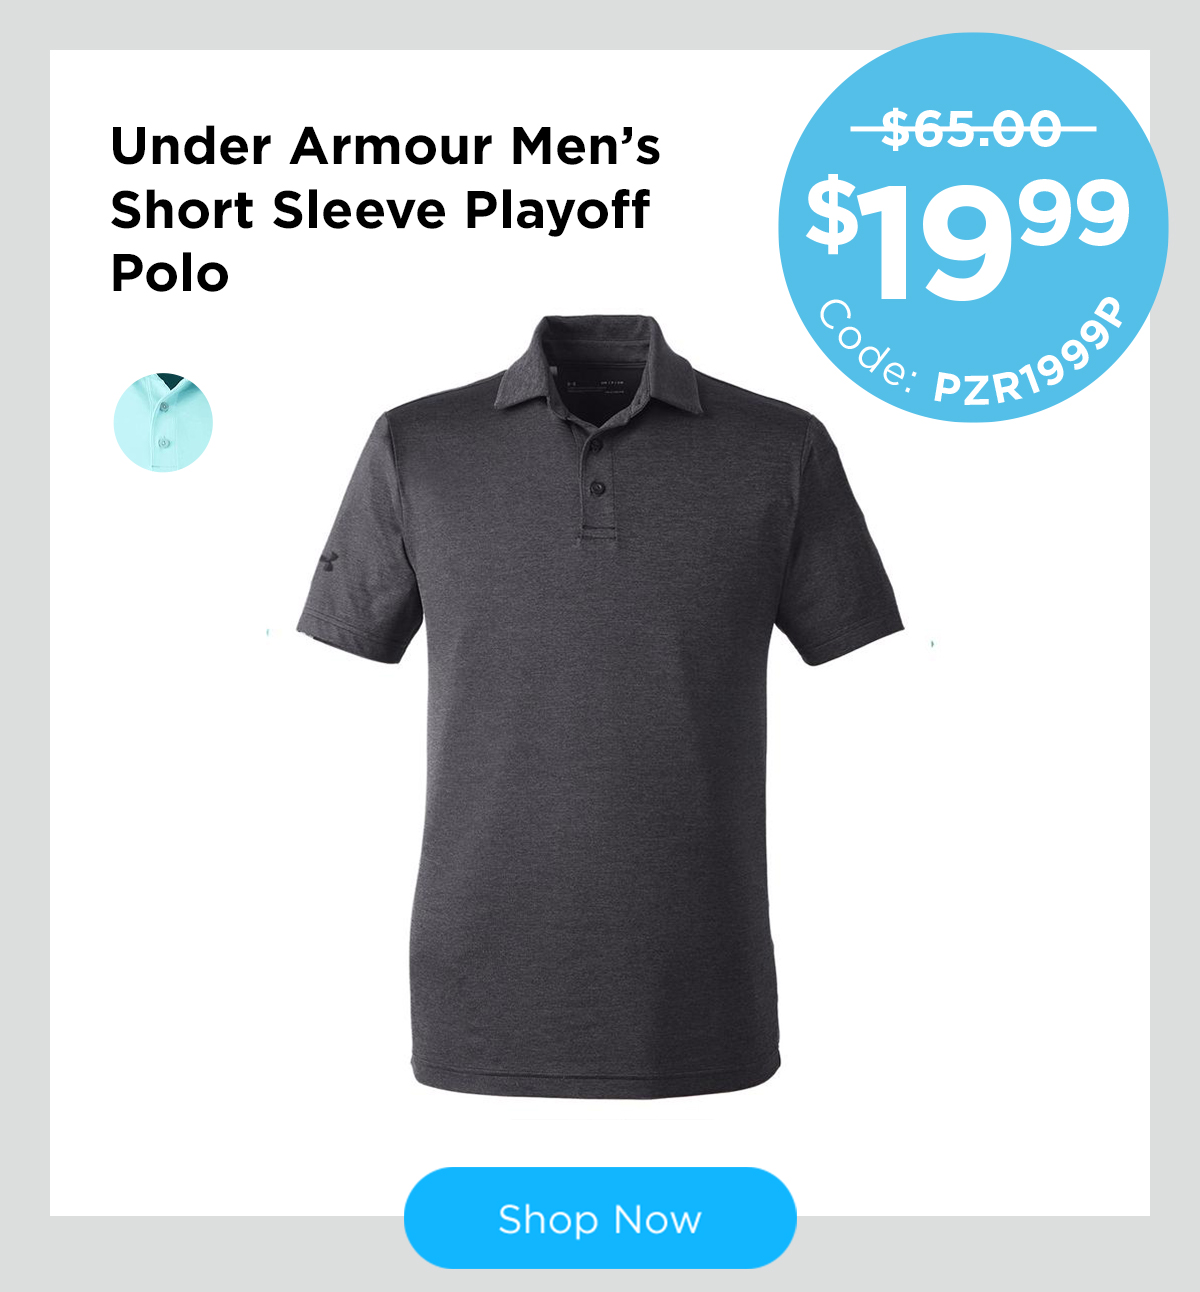 Under Armour Men's Short Sleeve Playoff Polo